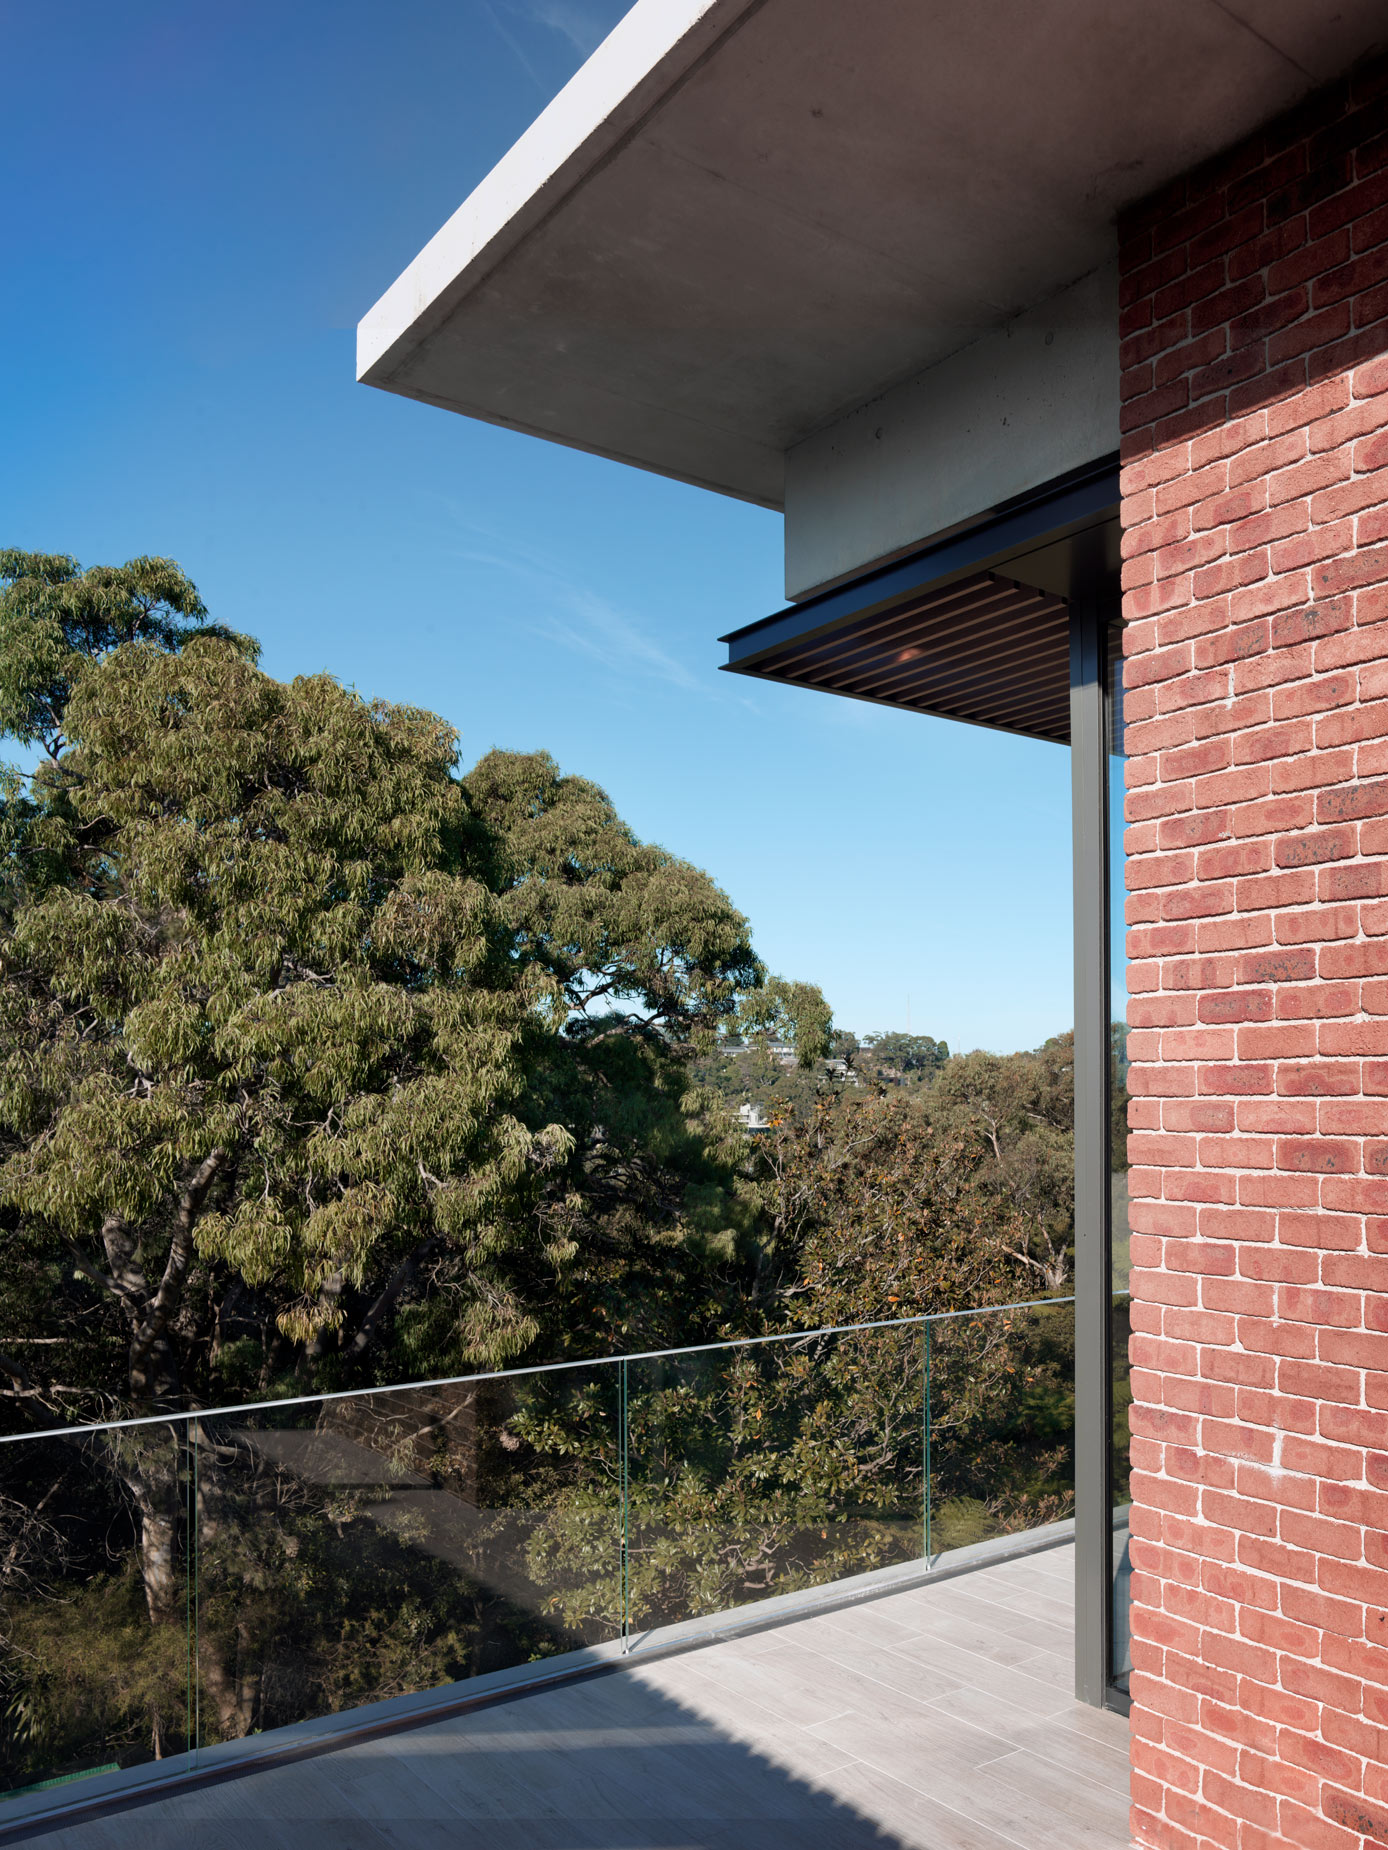 luke-butterly-2020-Cove-Cove-House-by-Dieppe-Design-Architecture-Sydney-NSW-7